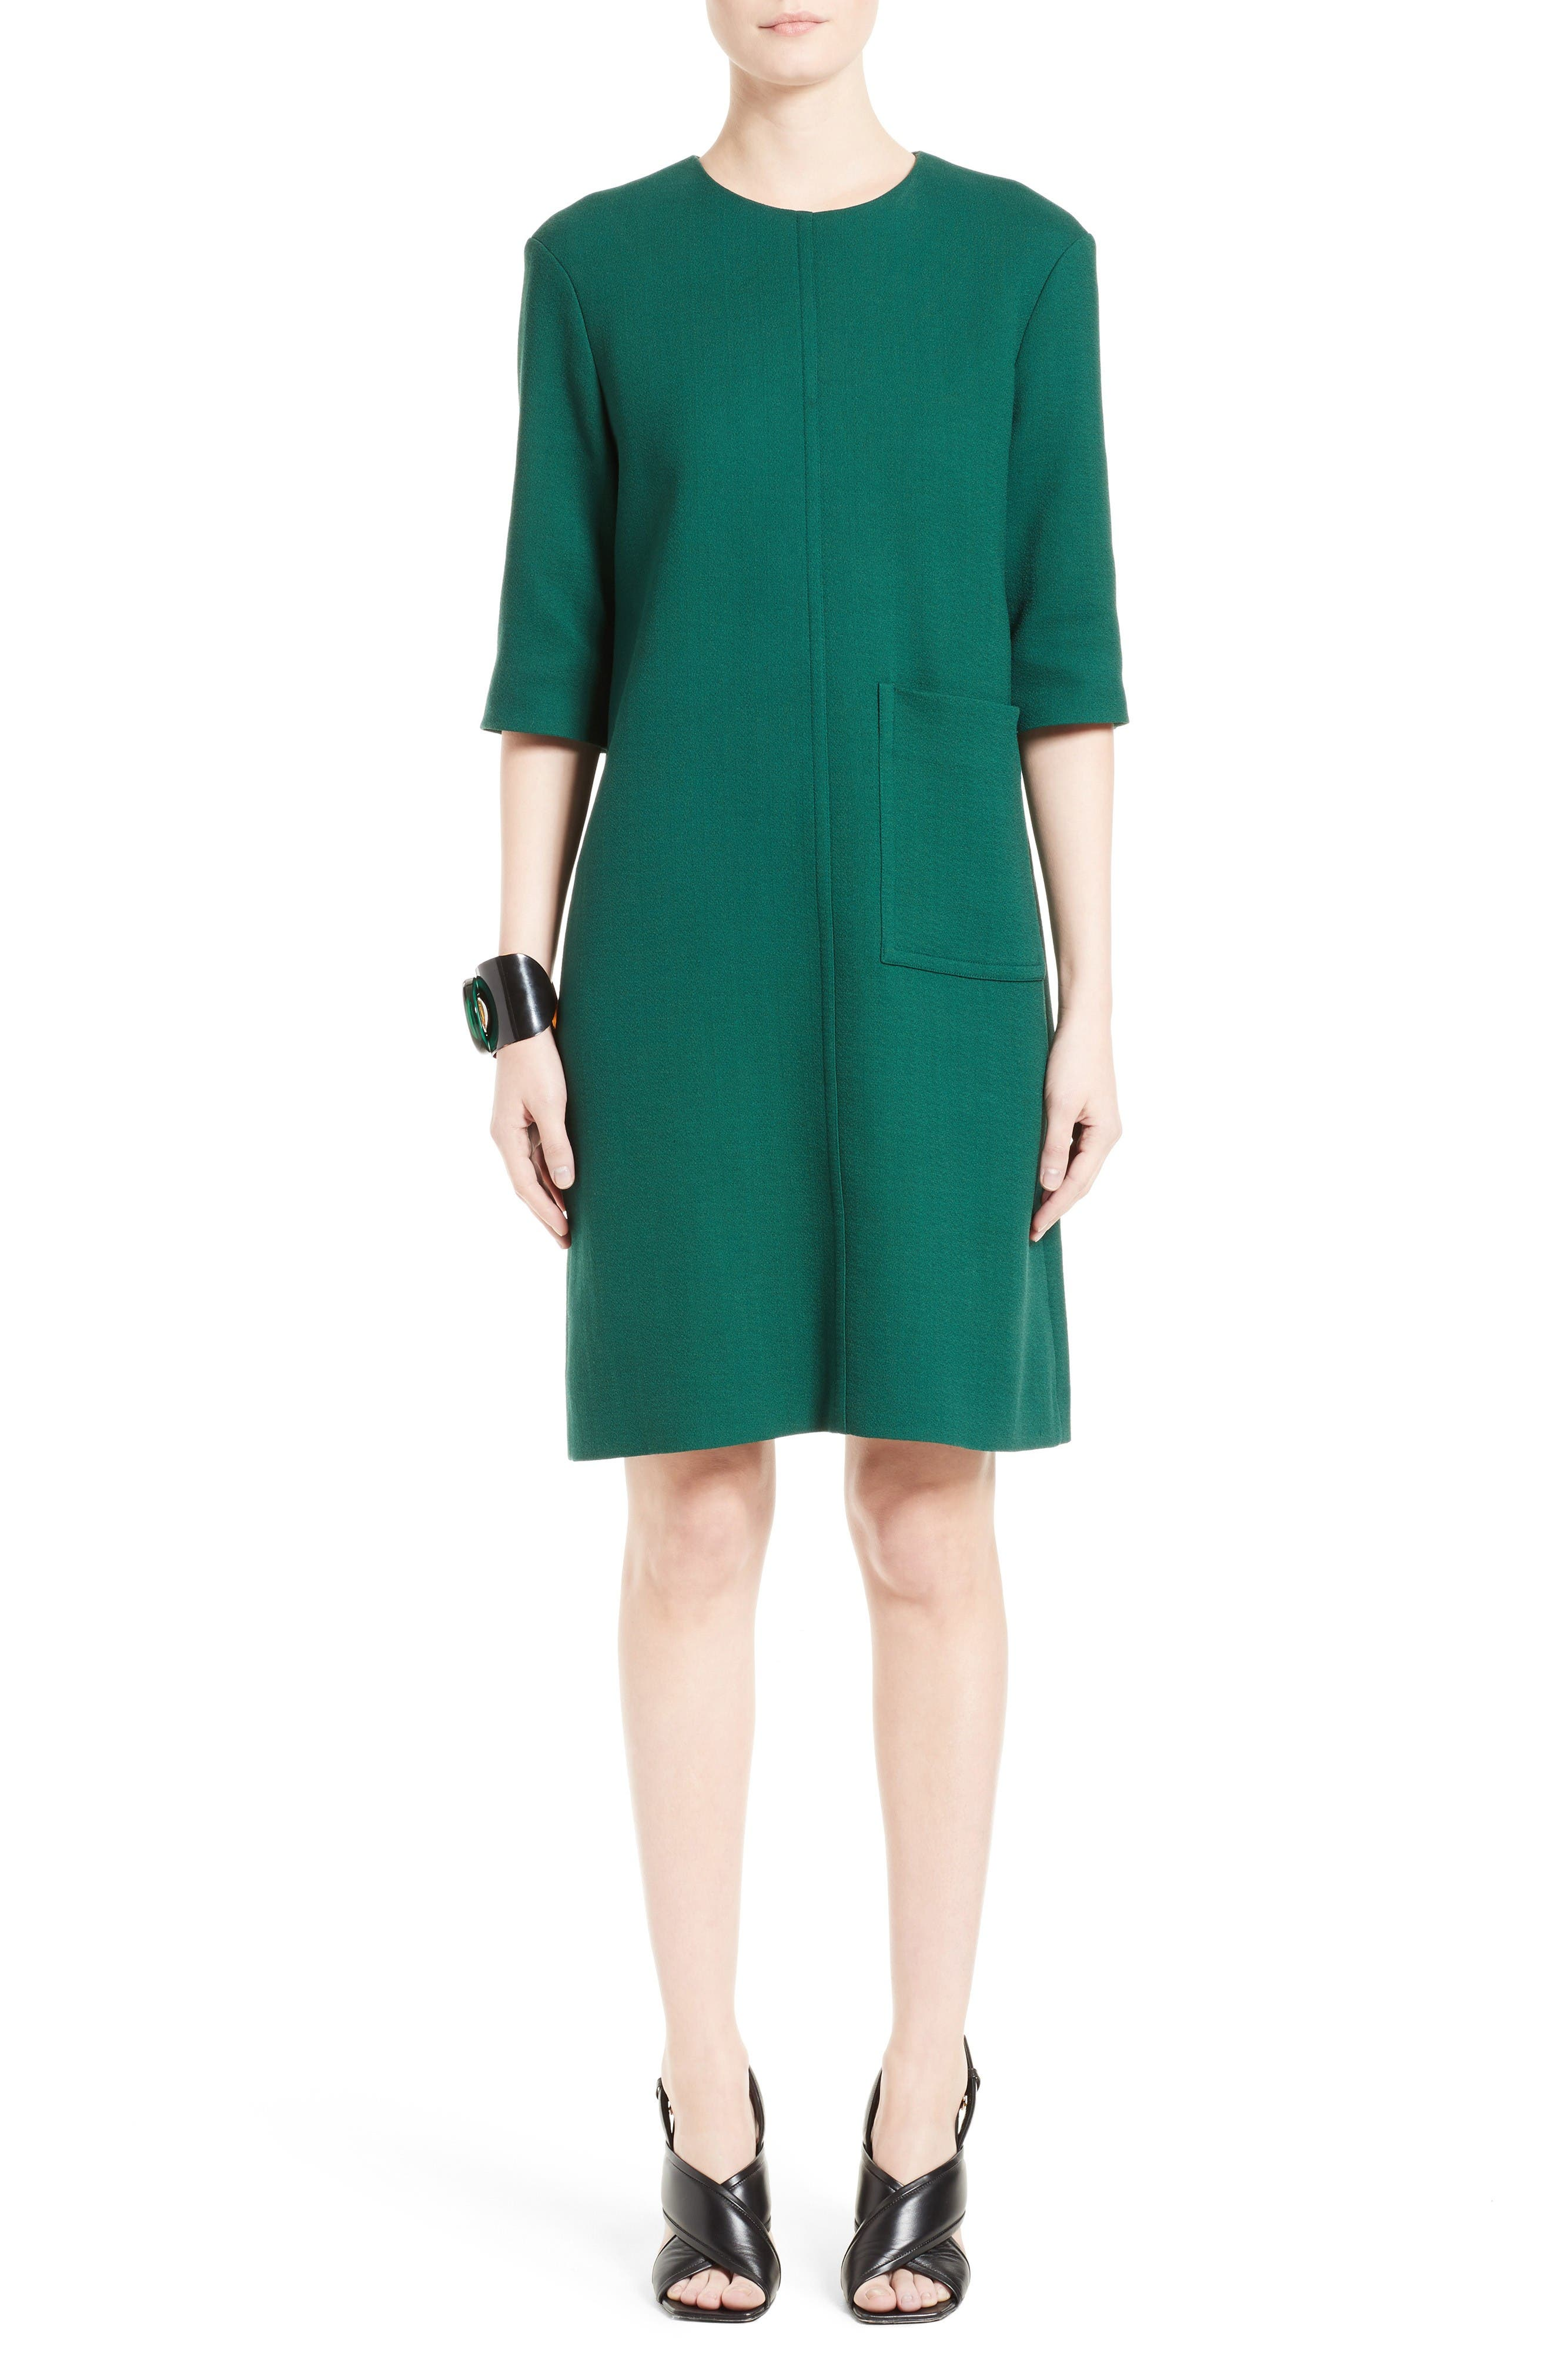 Marni Crepe Shift Dress